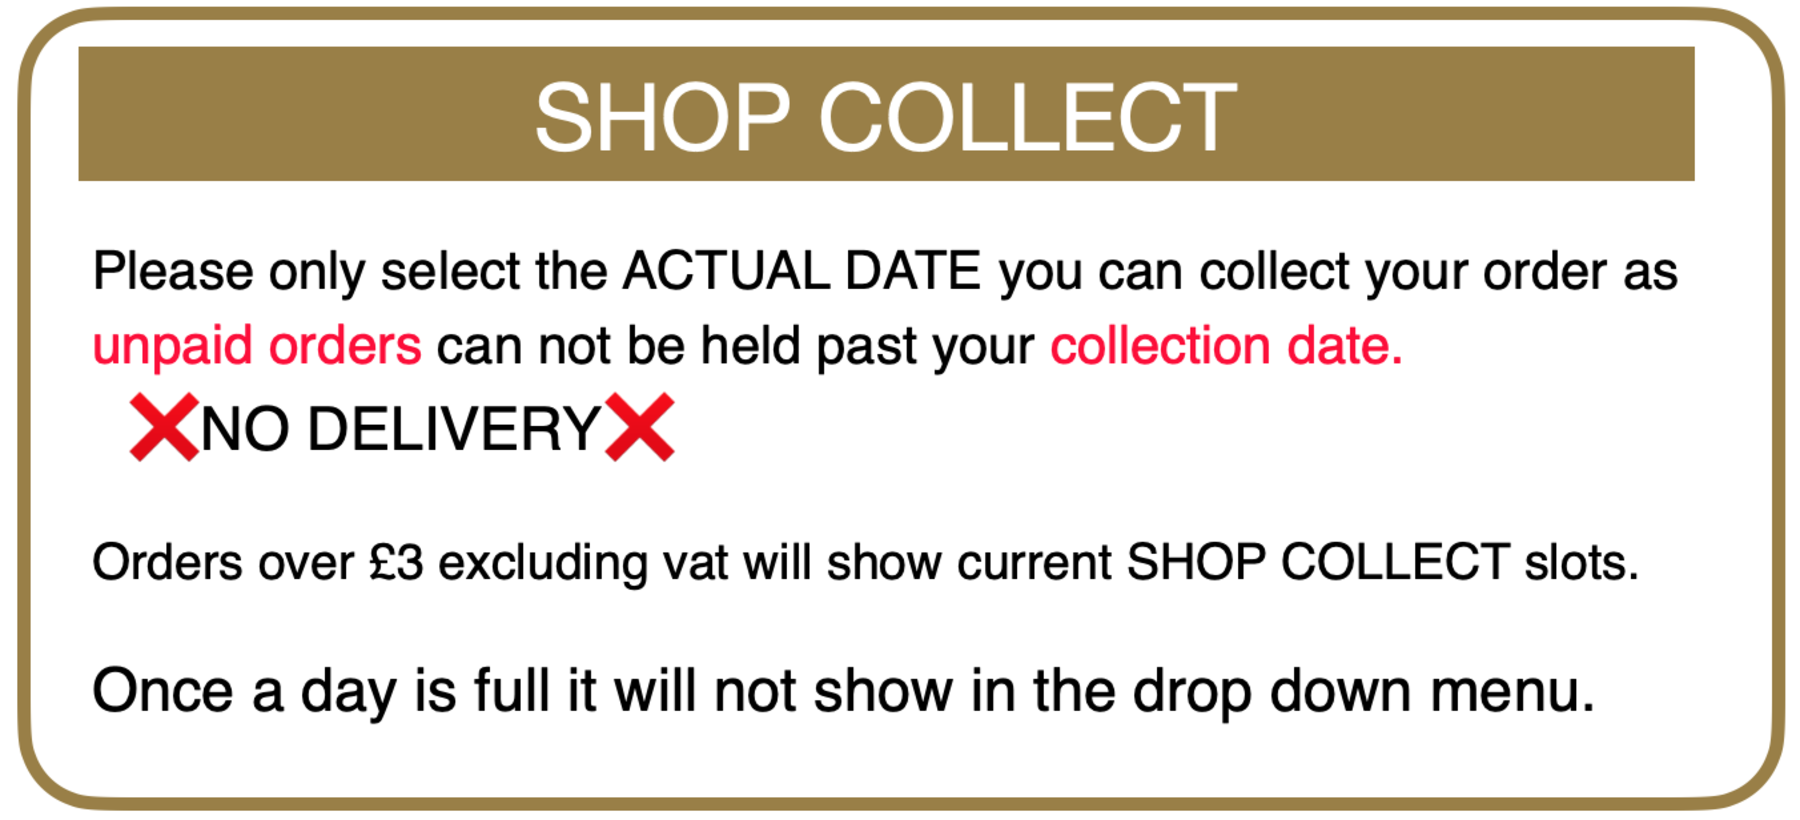 Shop collect guide